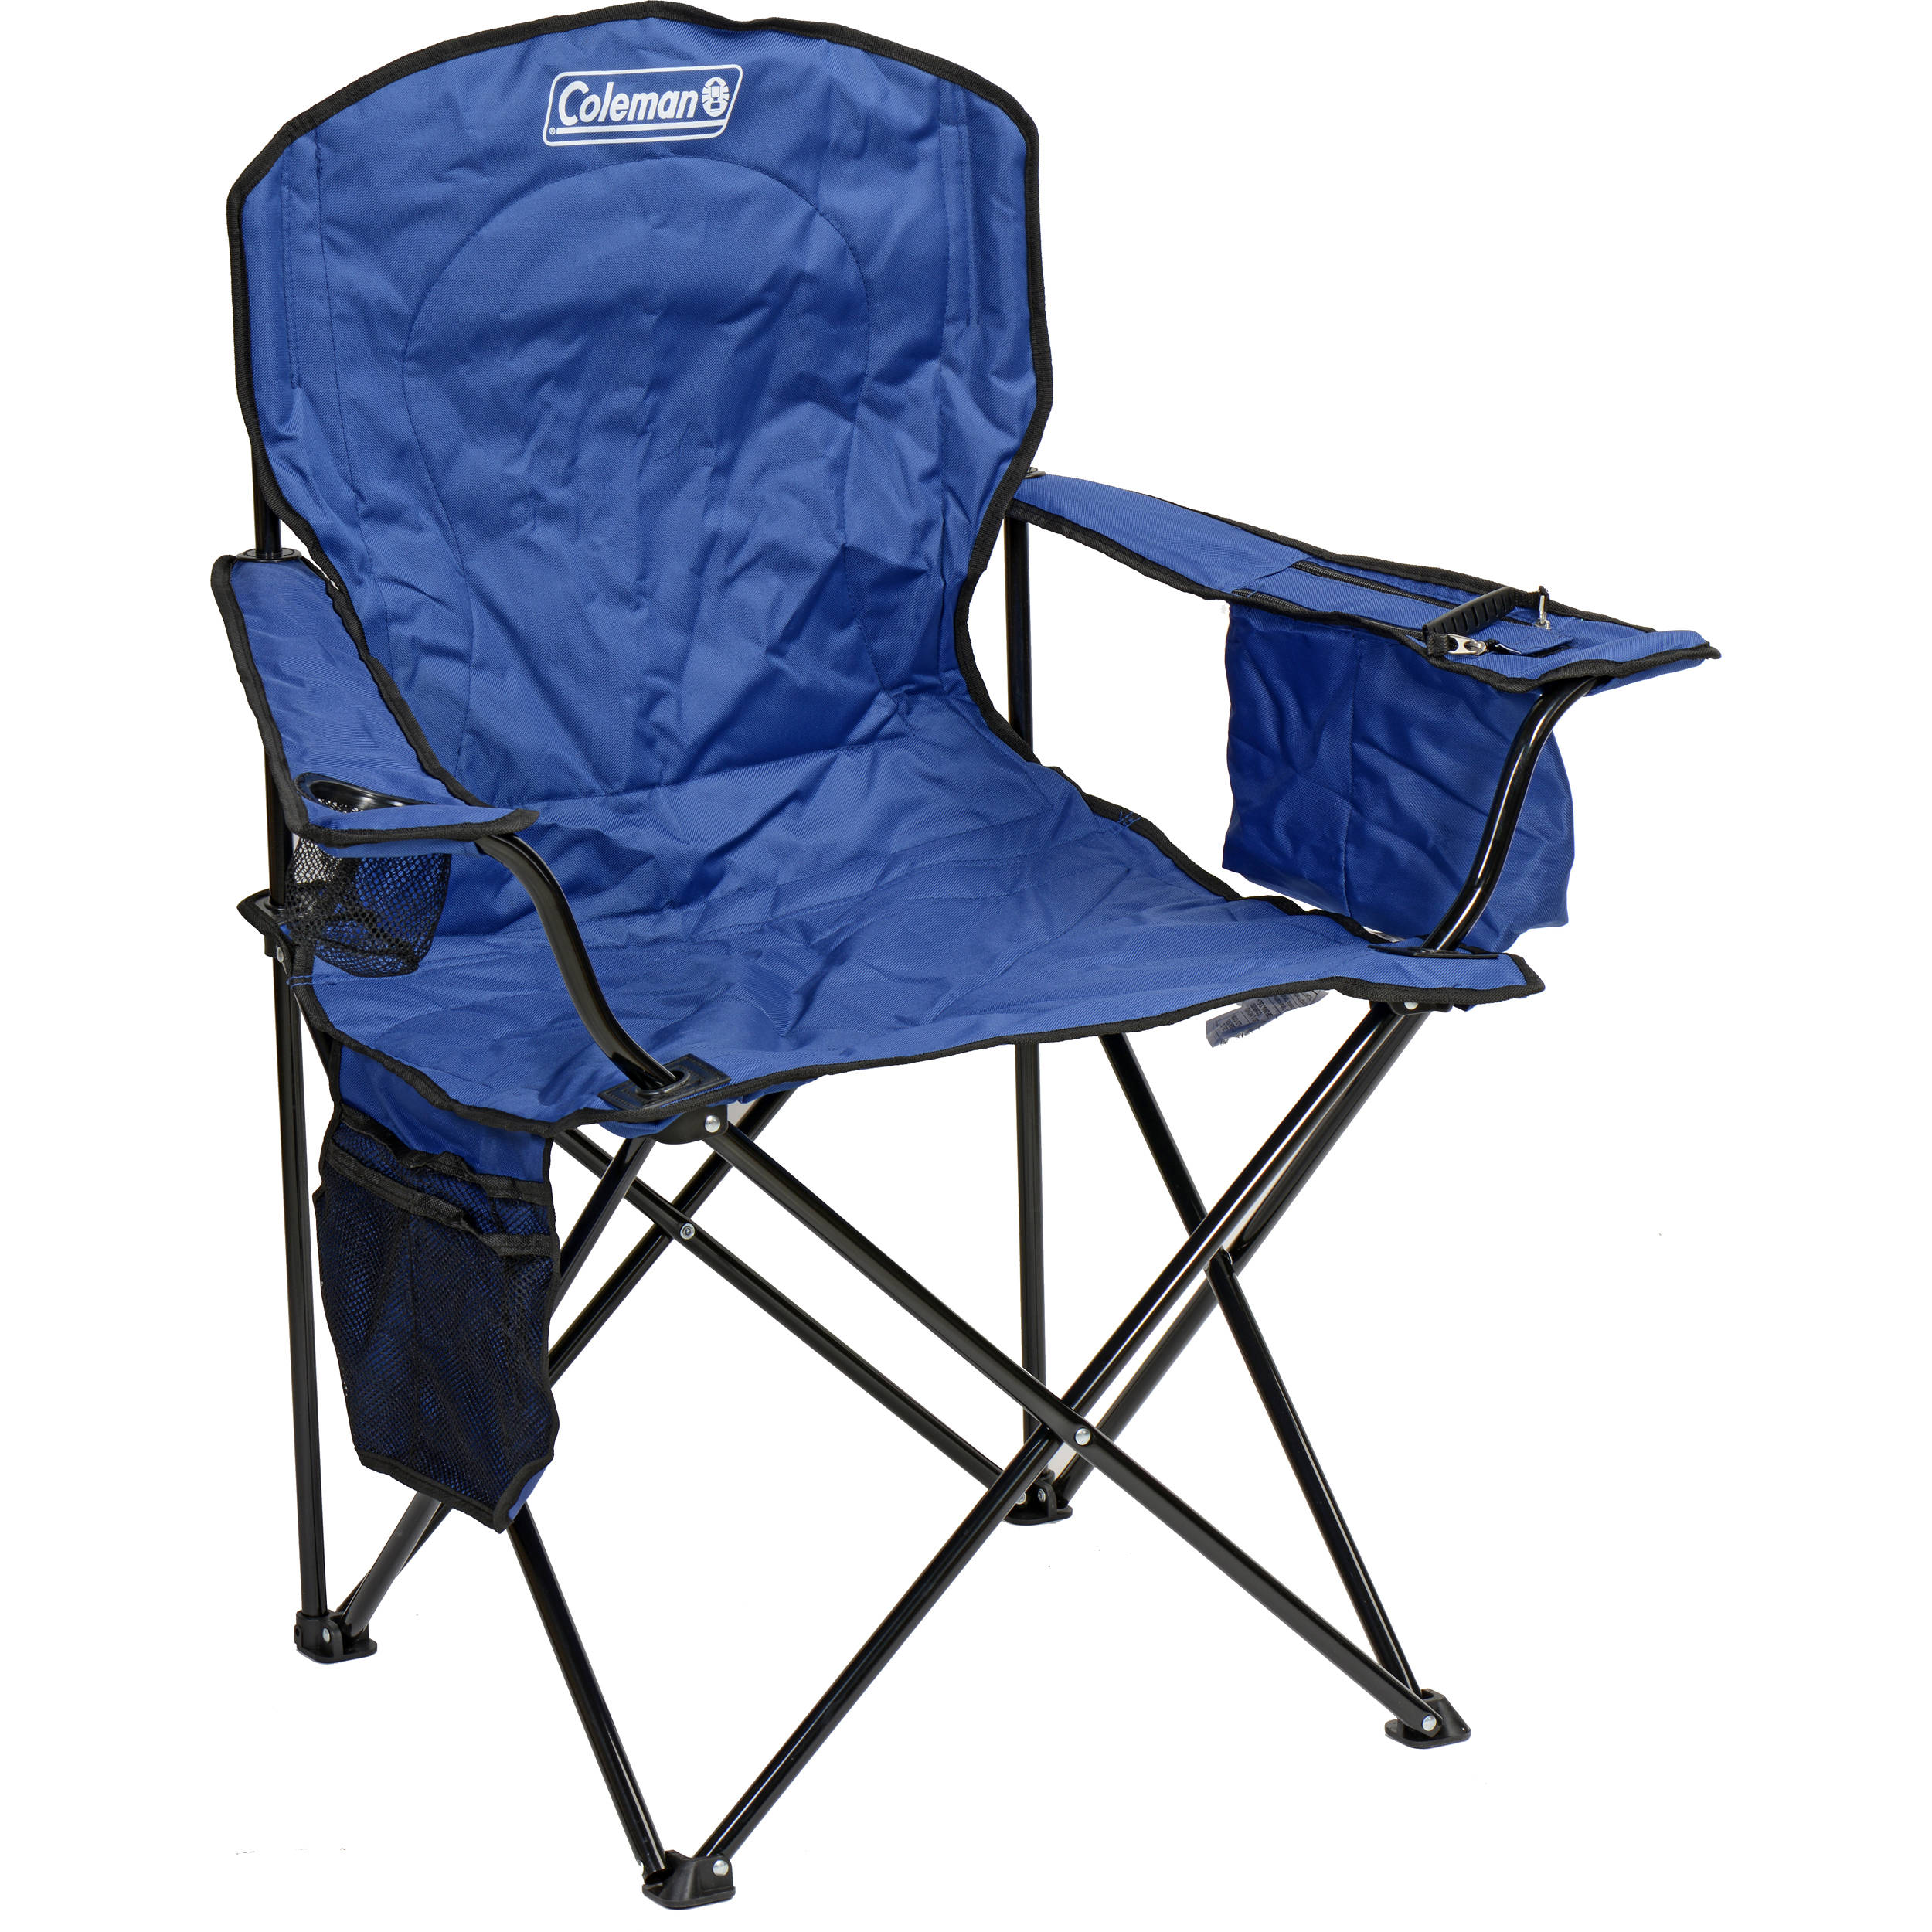 Coleman Oversized Quad Chair with Cooler Blue B&H